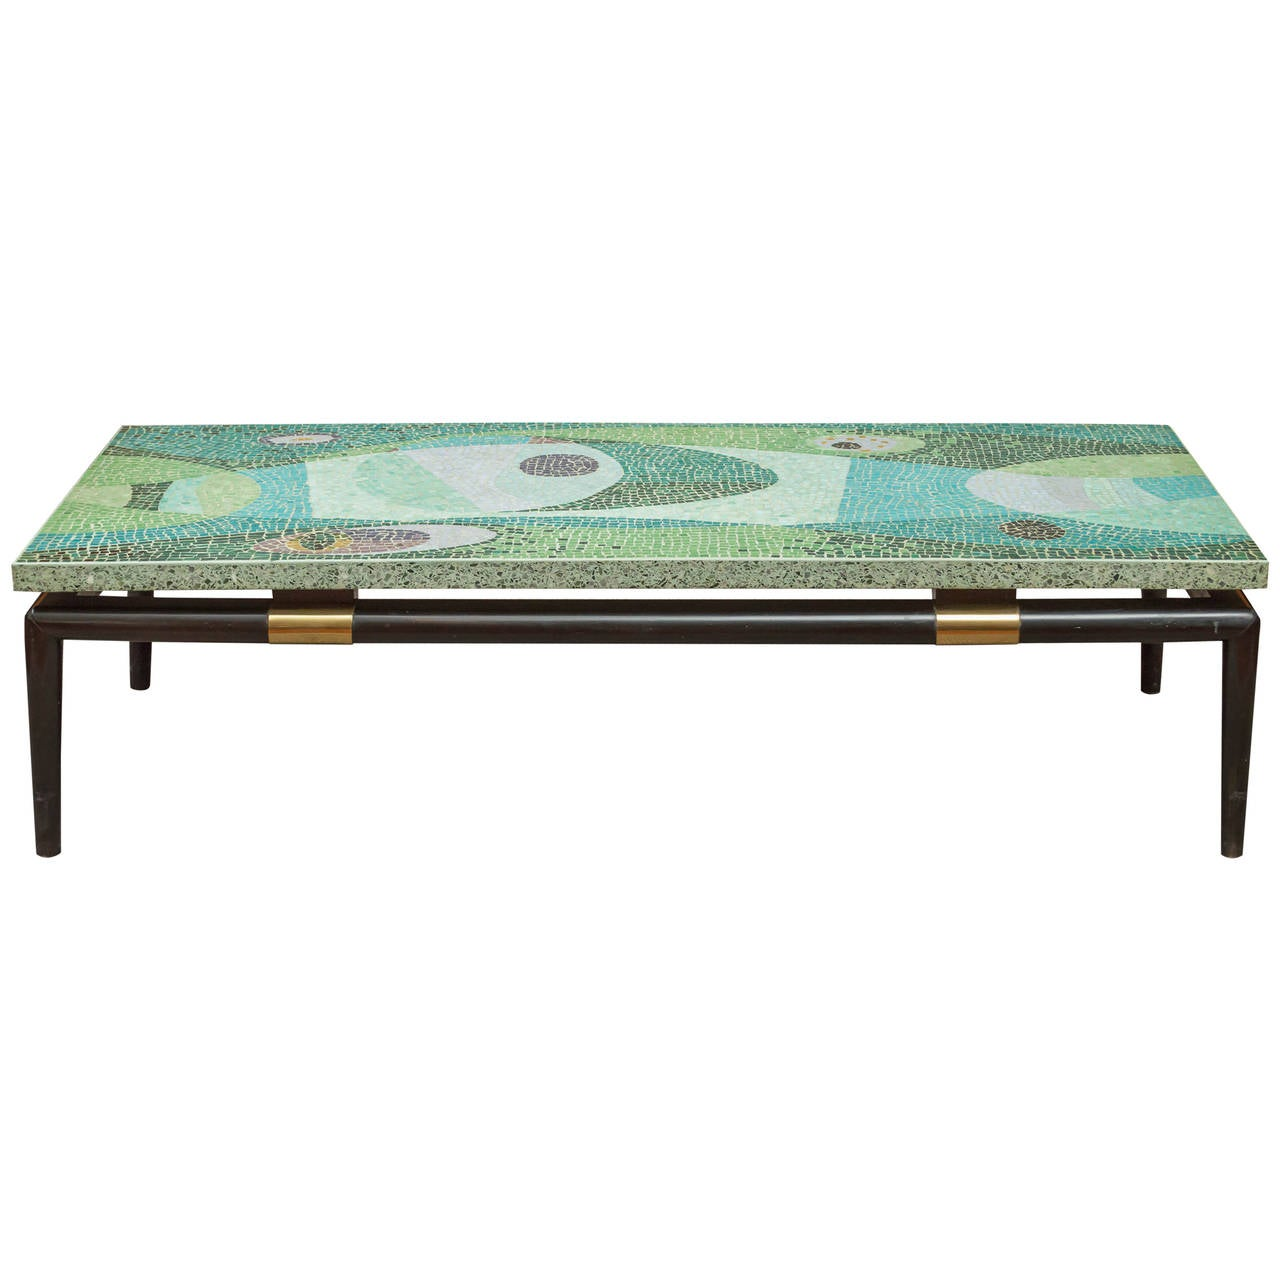 Mid century modern mosaic coffee table at 1stdibs for Mid century modern coffee table